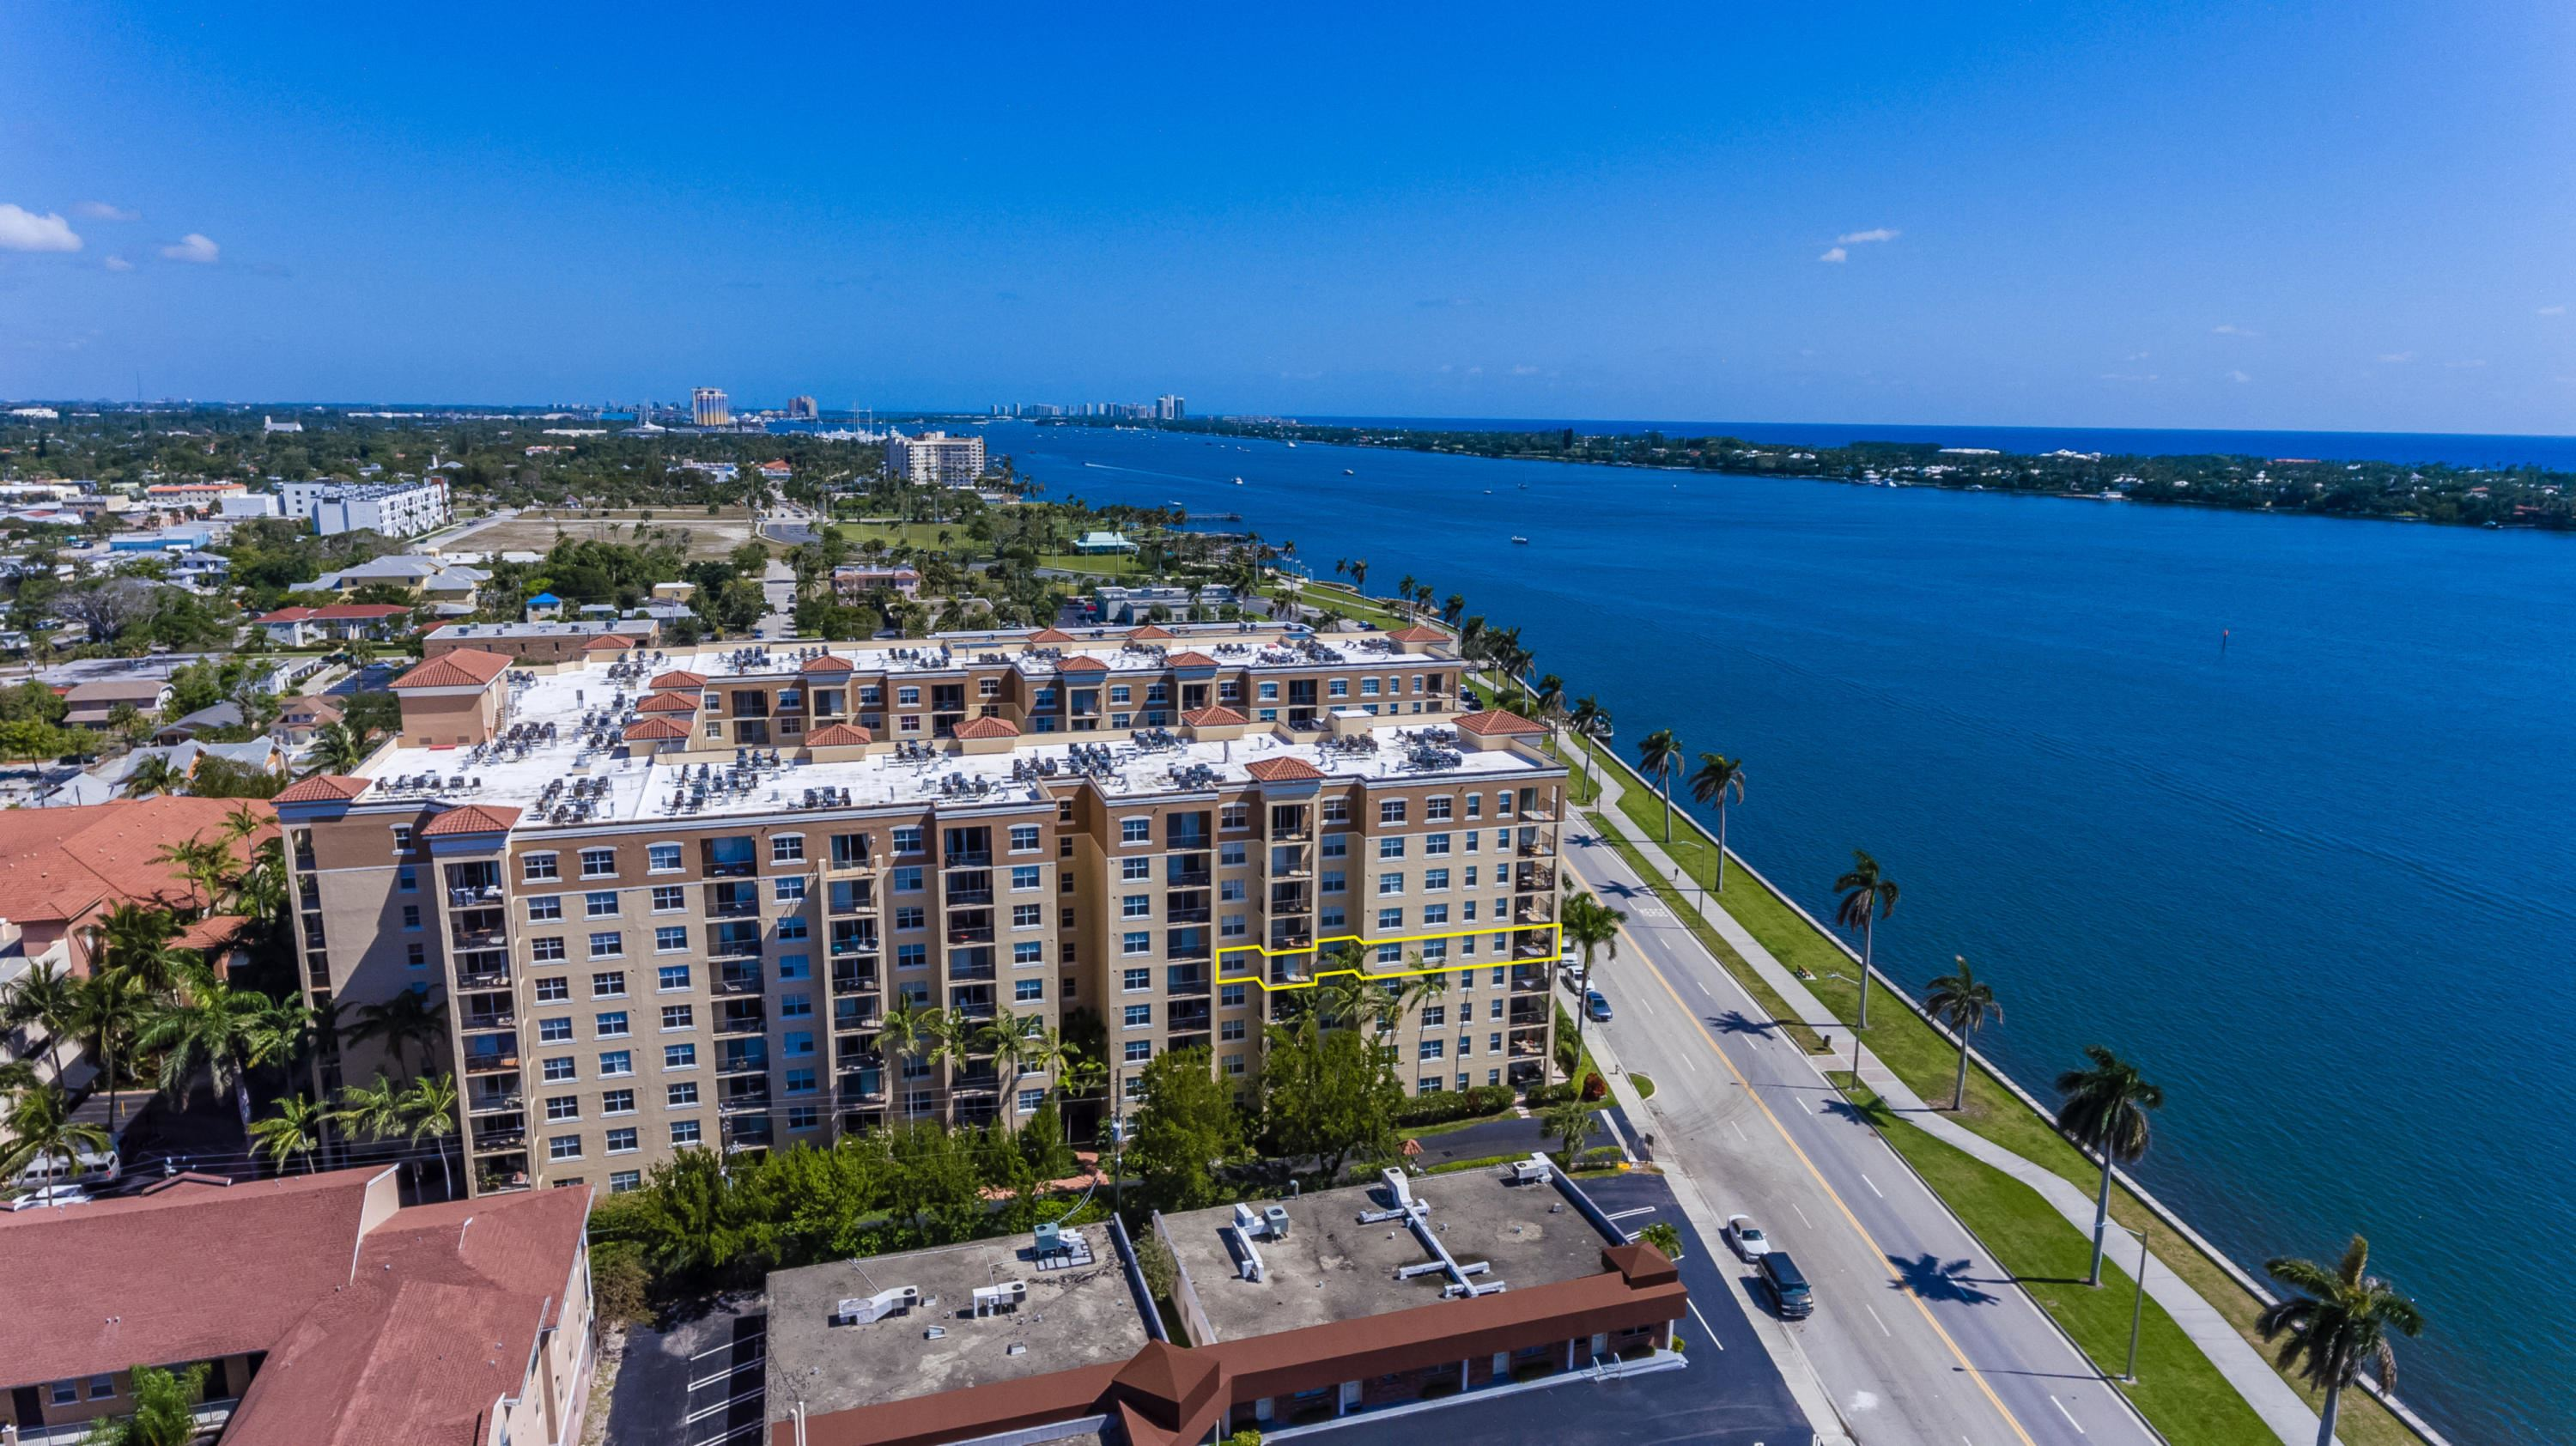 1801 N Flagler Drive Unit 502 & 504 West Palm Beach, FL 33407